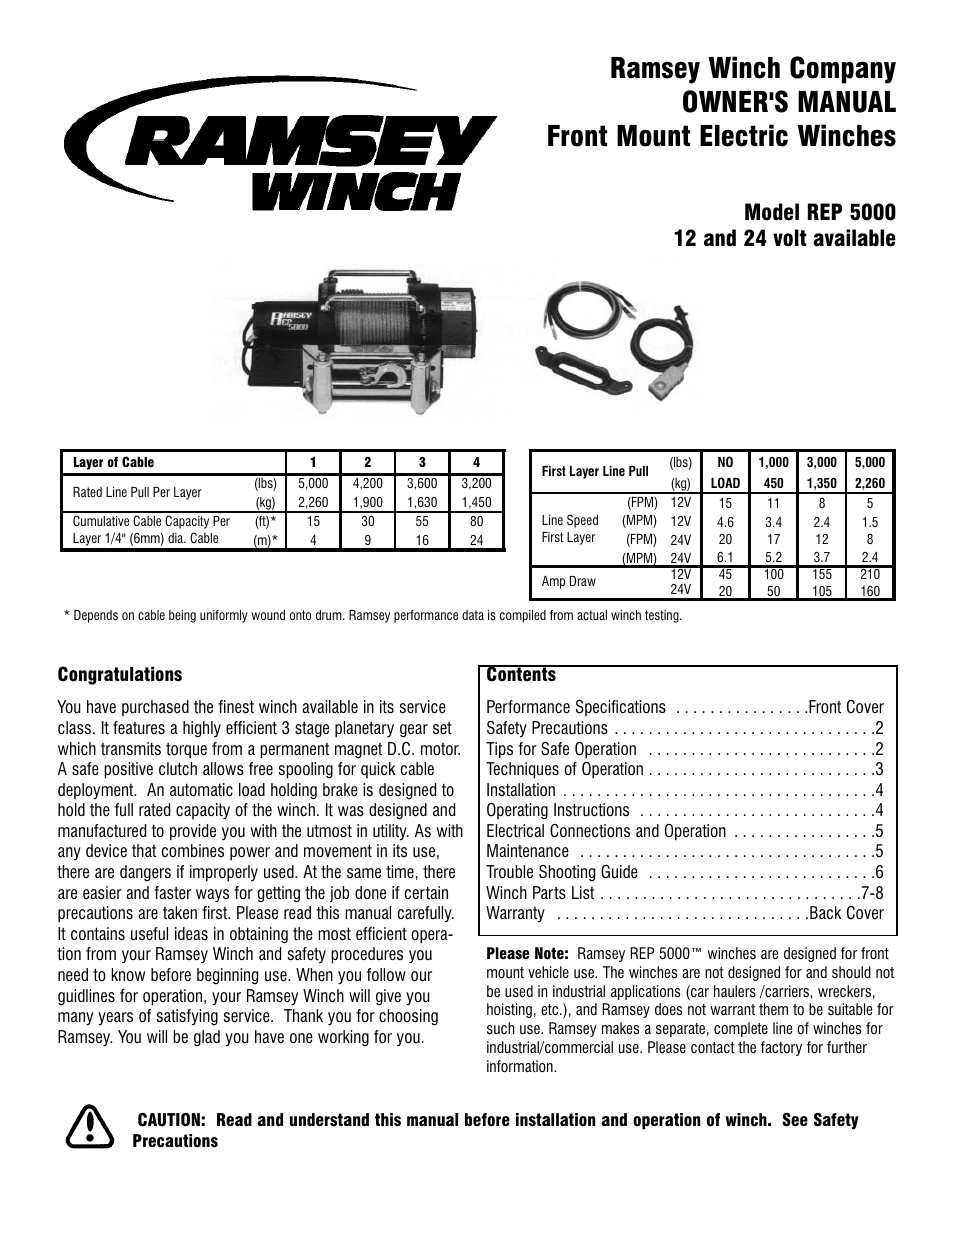 Ramsey 5000 Winch Parts Diagram Smart Wiring Diagrams 8000 Rep User Manual 12 Pages Rh Manualsdir Com Solenoid Old